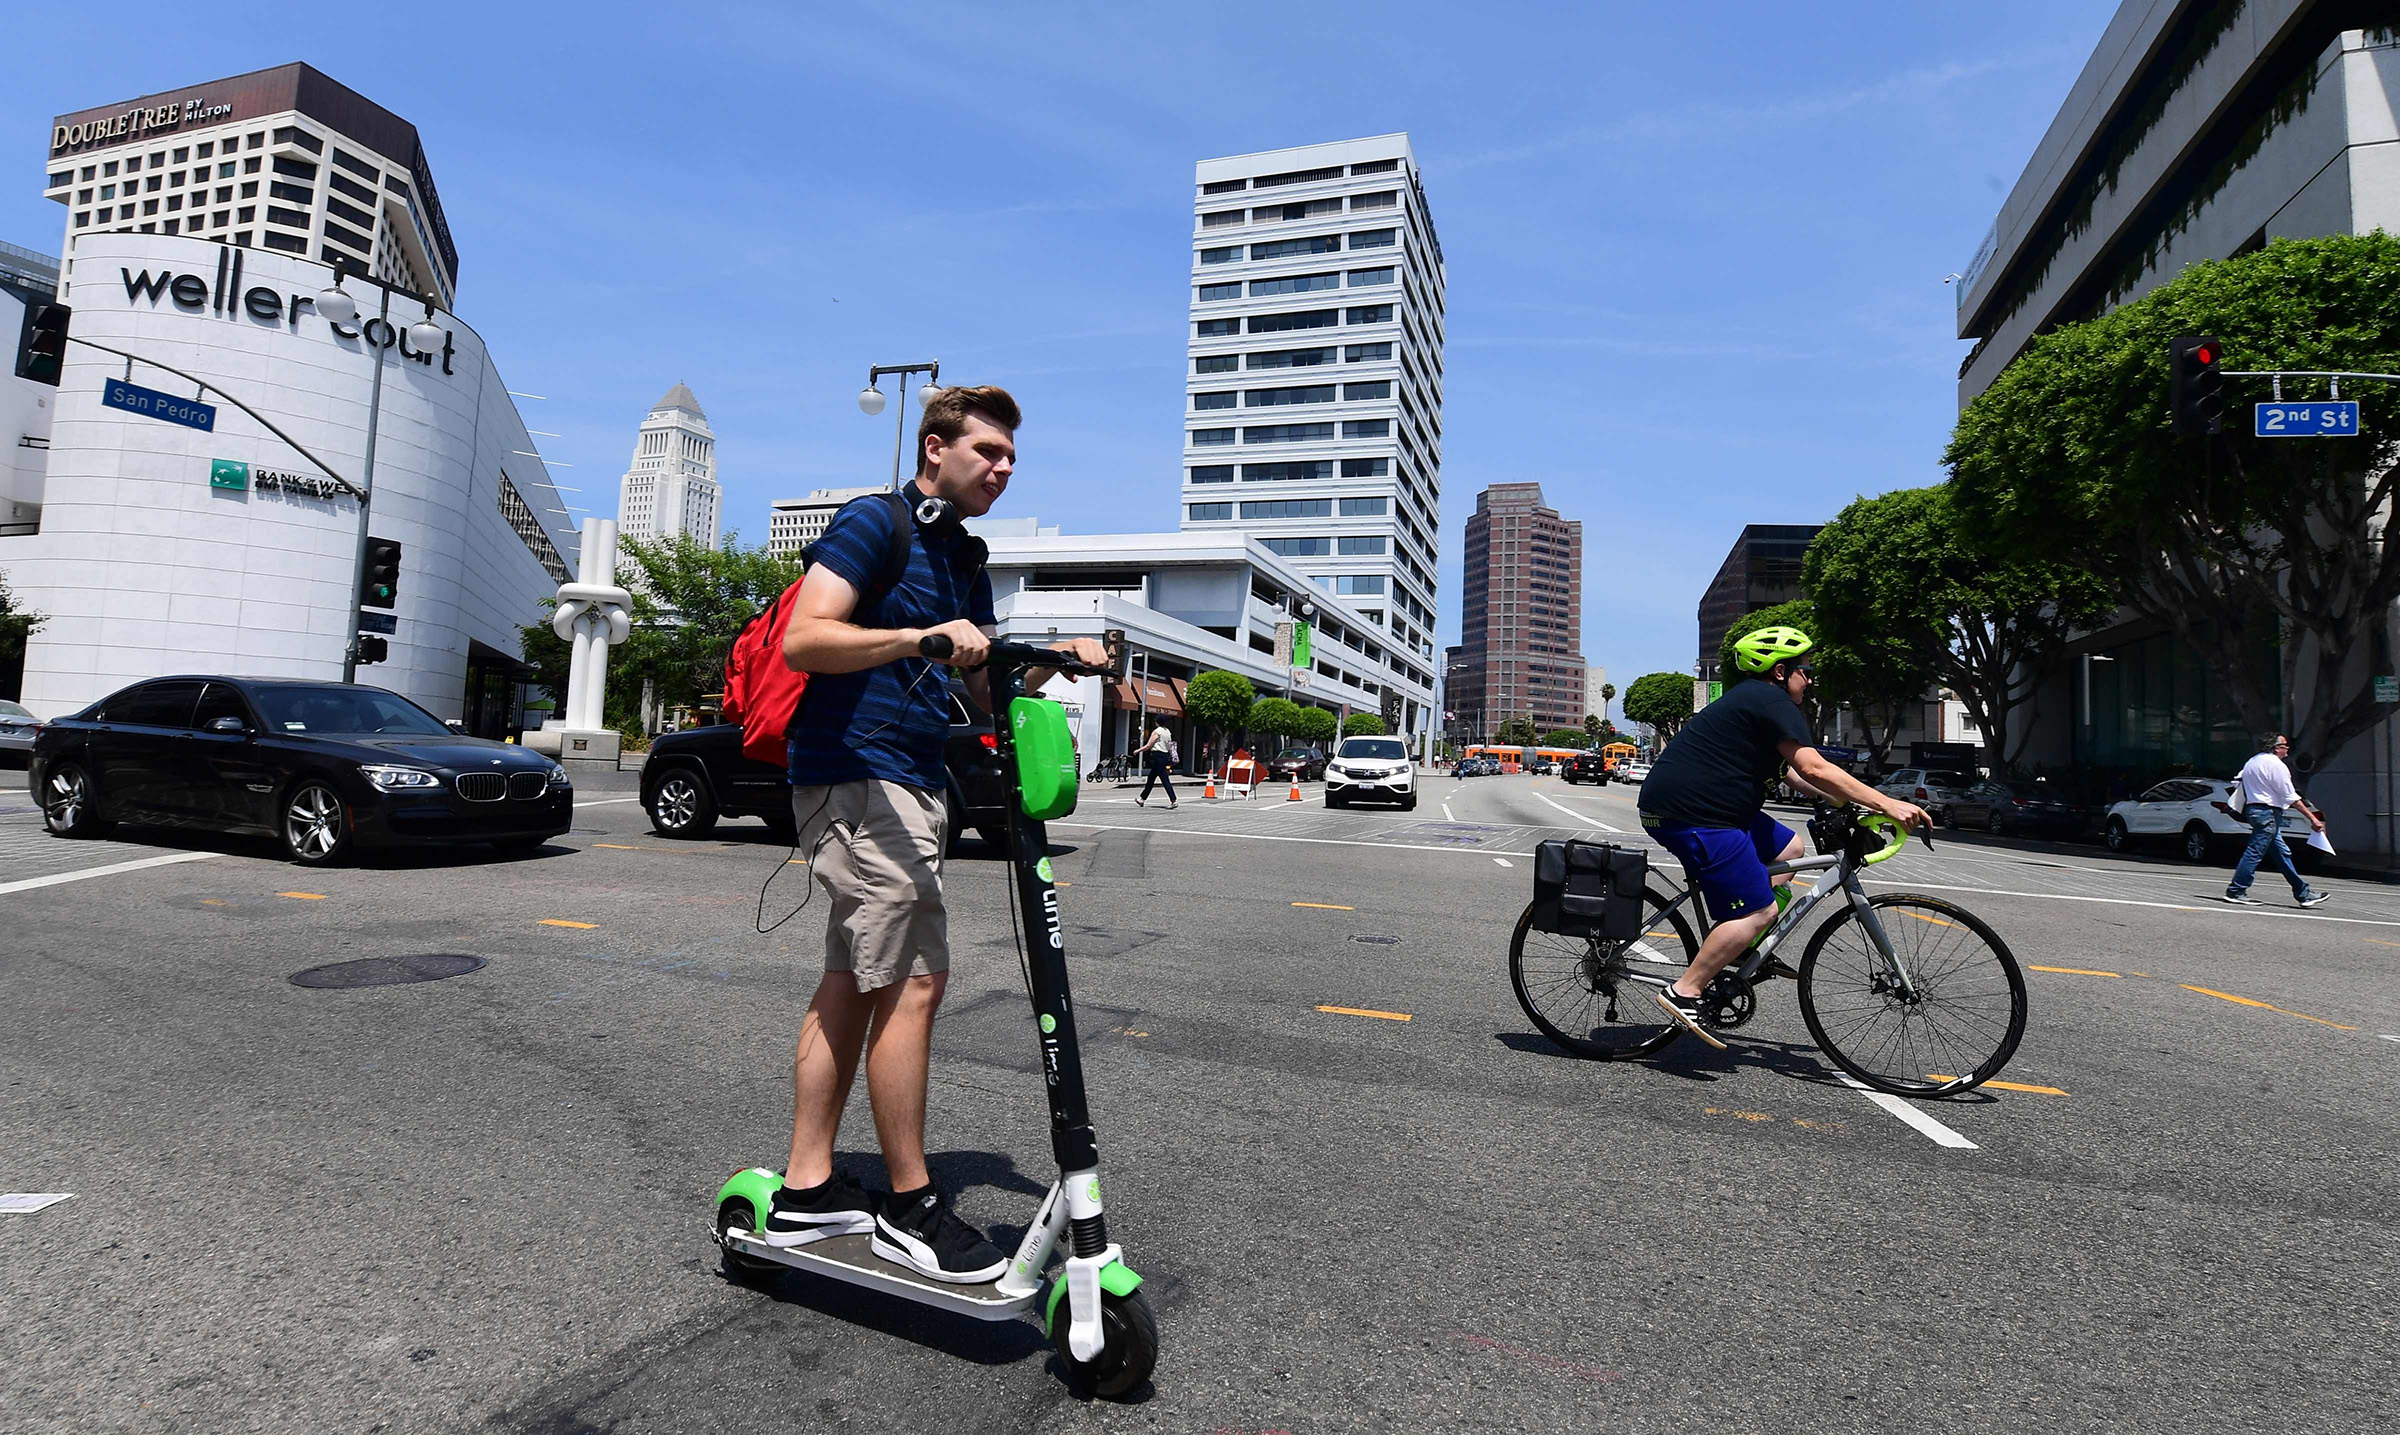 A commuter rides an e-scooter across a Los Angeles street on August 22, 2019, where an e-scooter enforcement task force has been launched in an effort to ensure riders follow the laws.